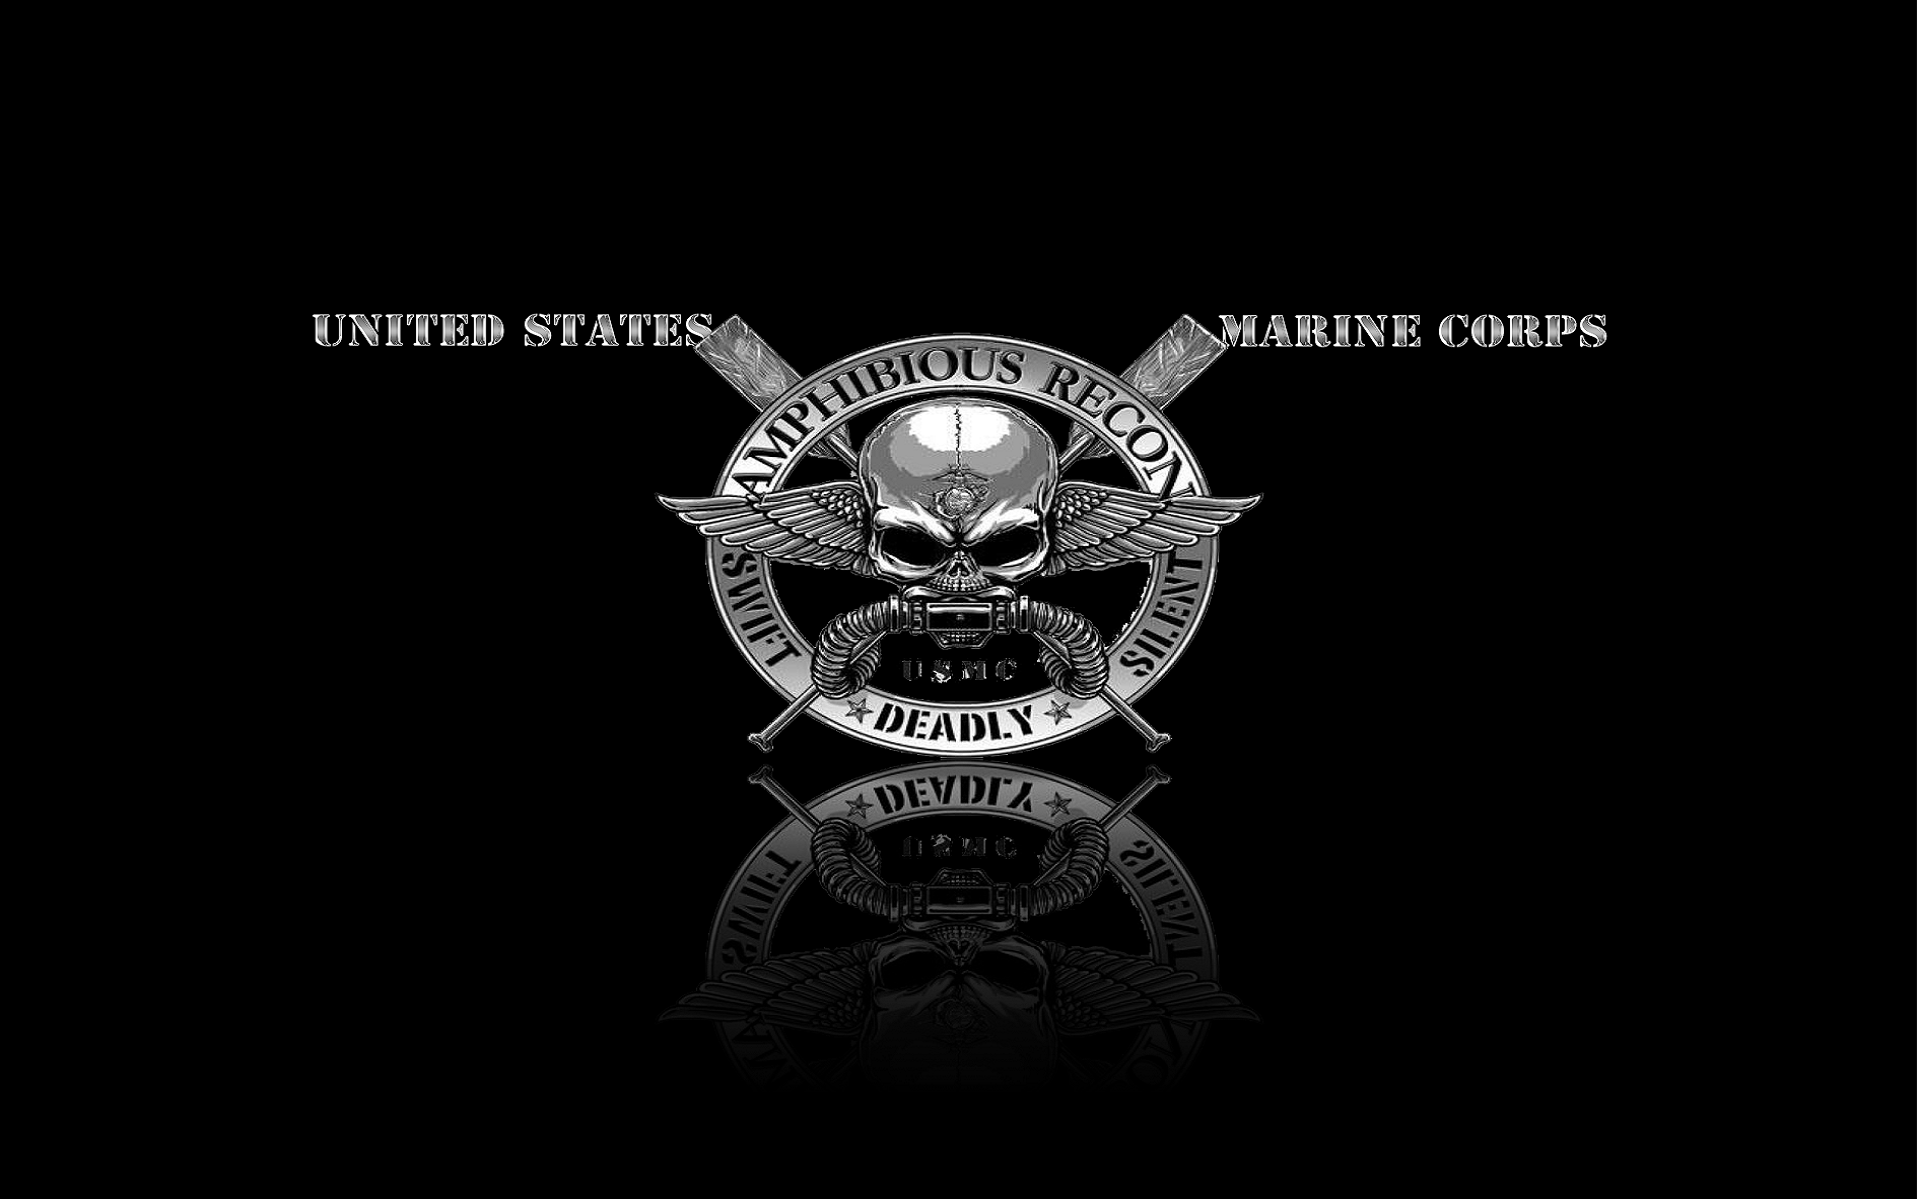 Usmc Logo Wallpaper Pictures to Pin   PinsDaddy 1920x1200